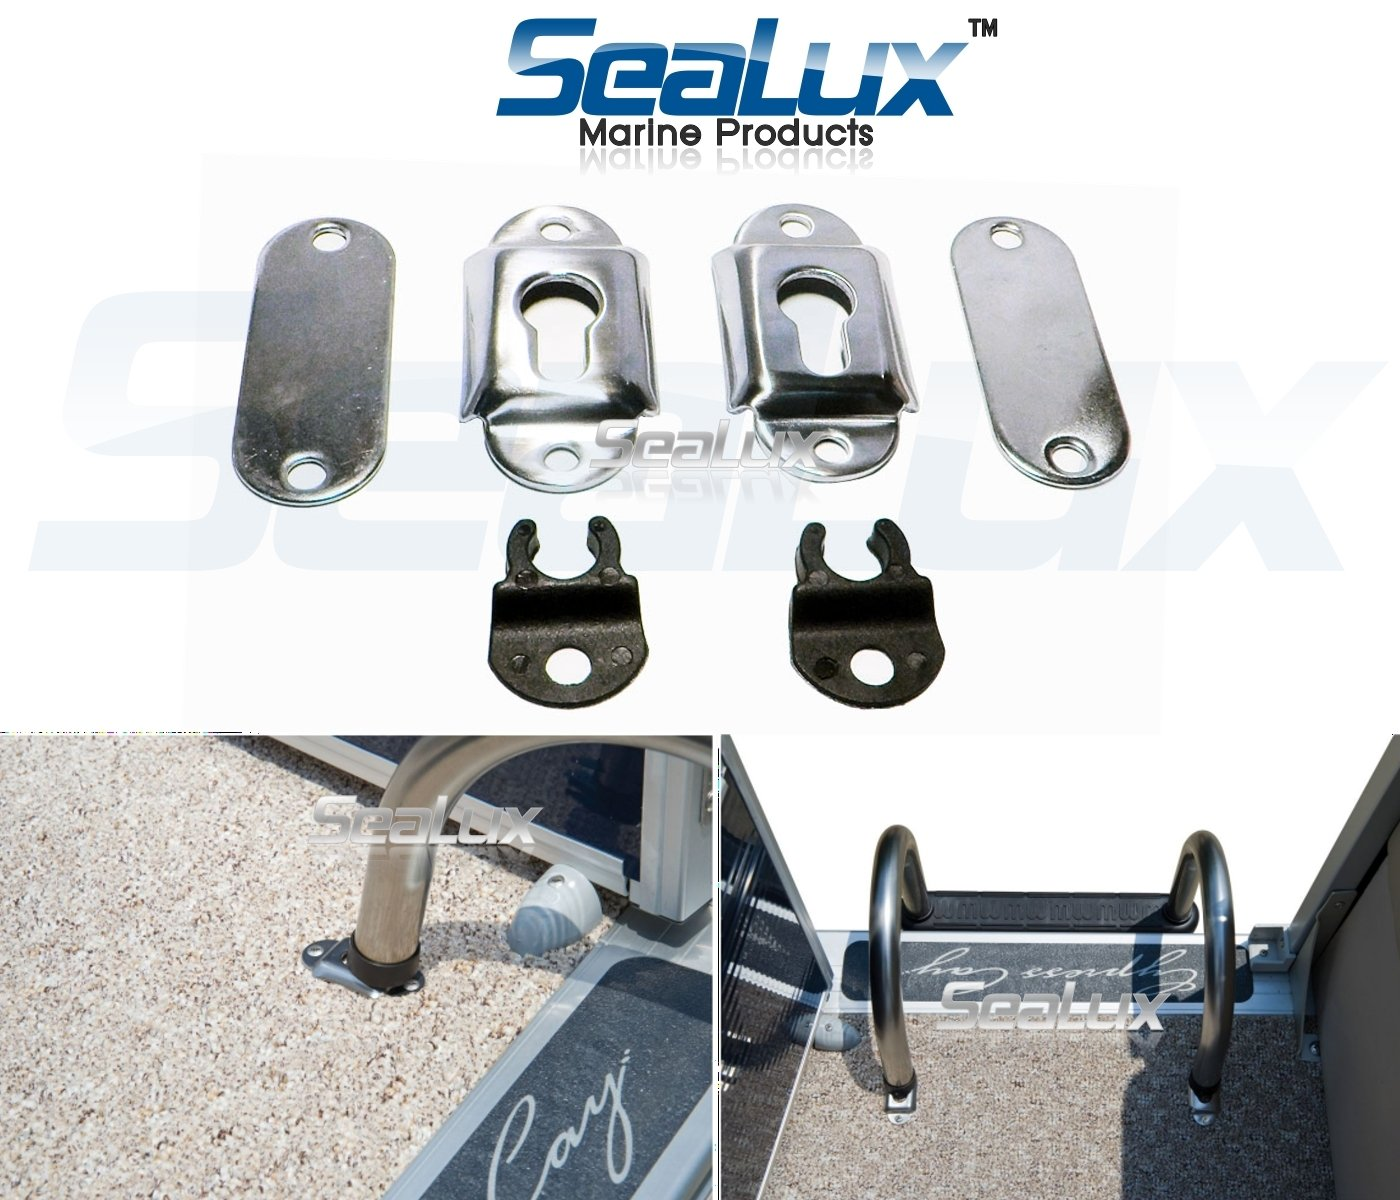 SeaLux Stainless Steel Surface Mounting Sockets /brackets for Removable Folding Transom Ladders/Pontoon/Gunwale Mount Ladders